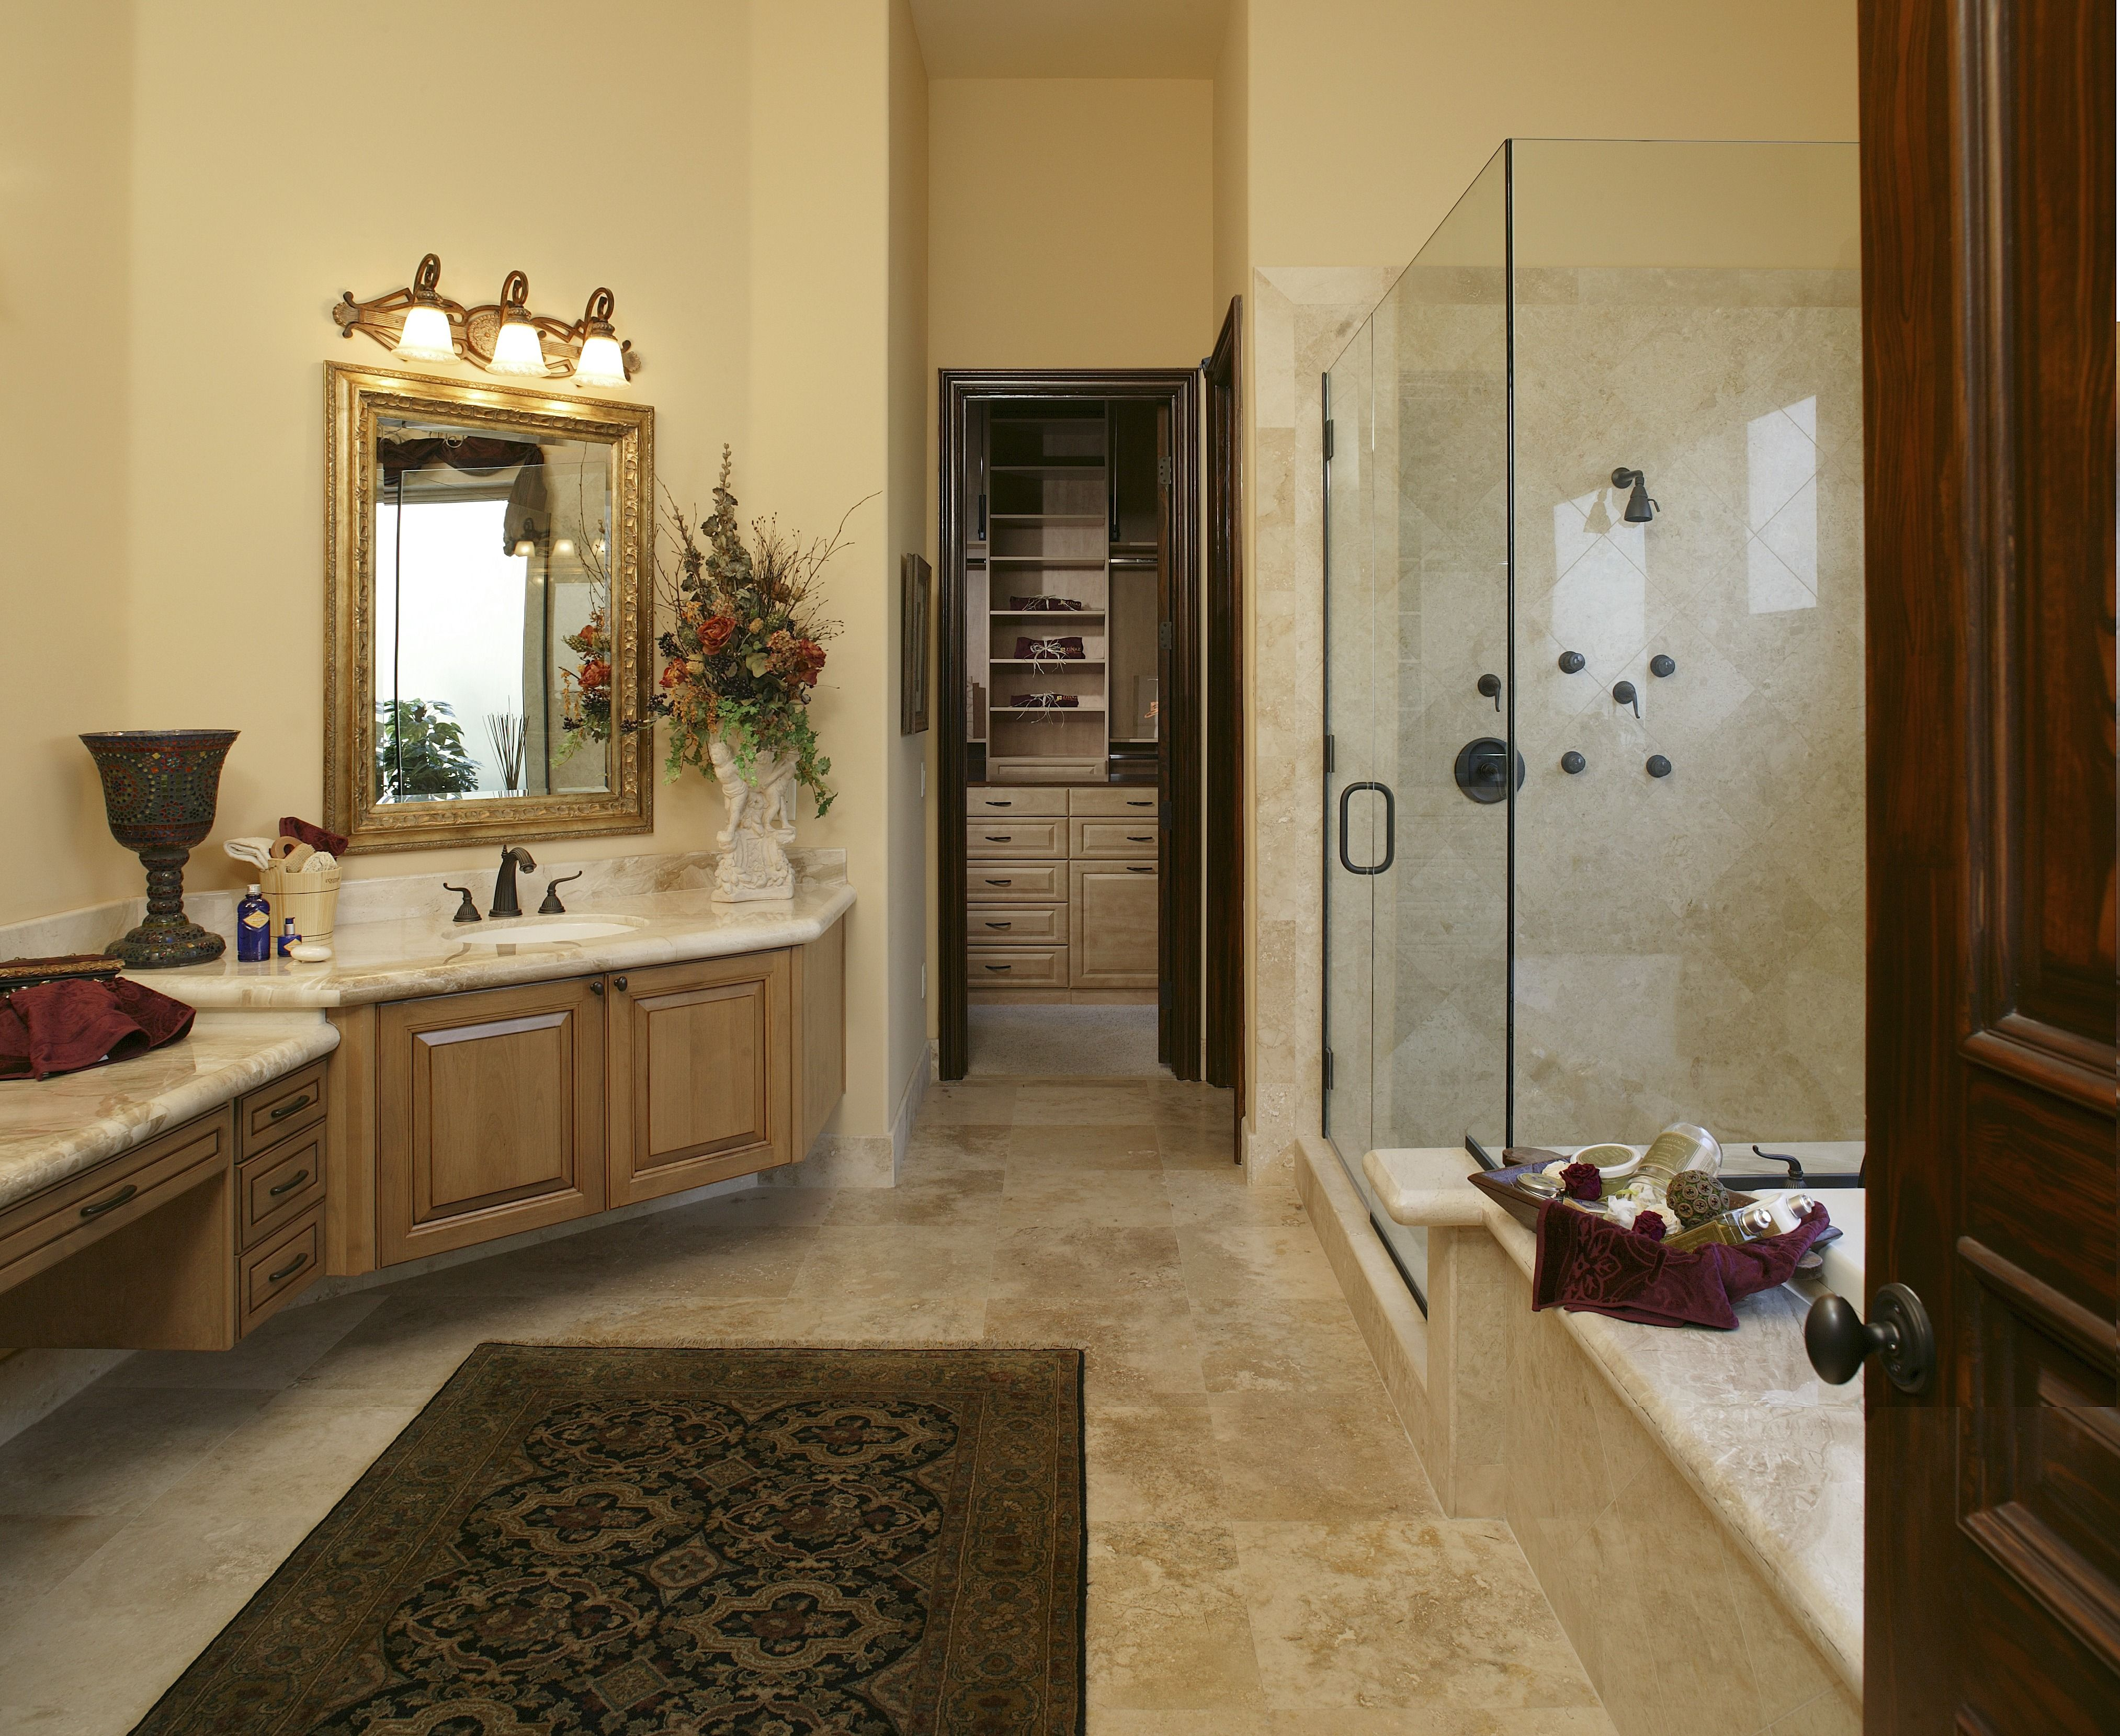 The Neutral Walls, Tile Floor And Glass Shower Door Make This Bathroom  Especially Bright And